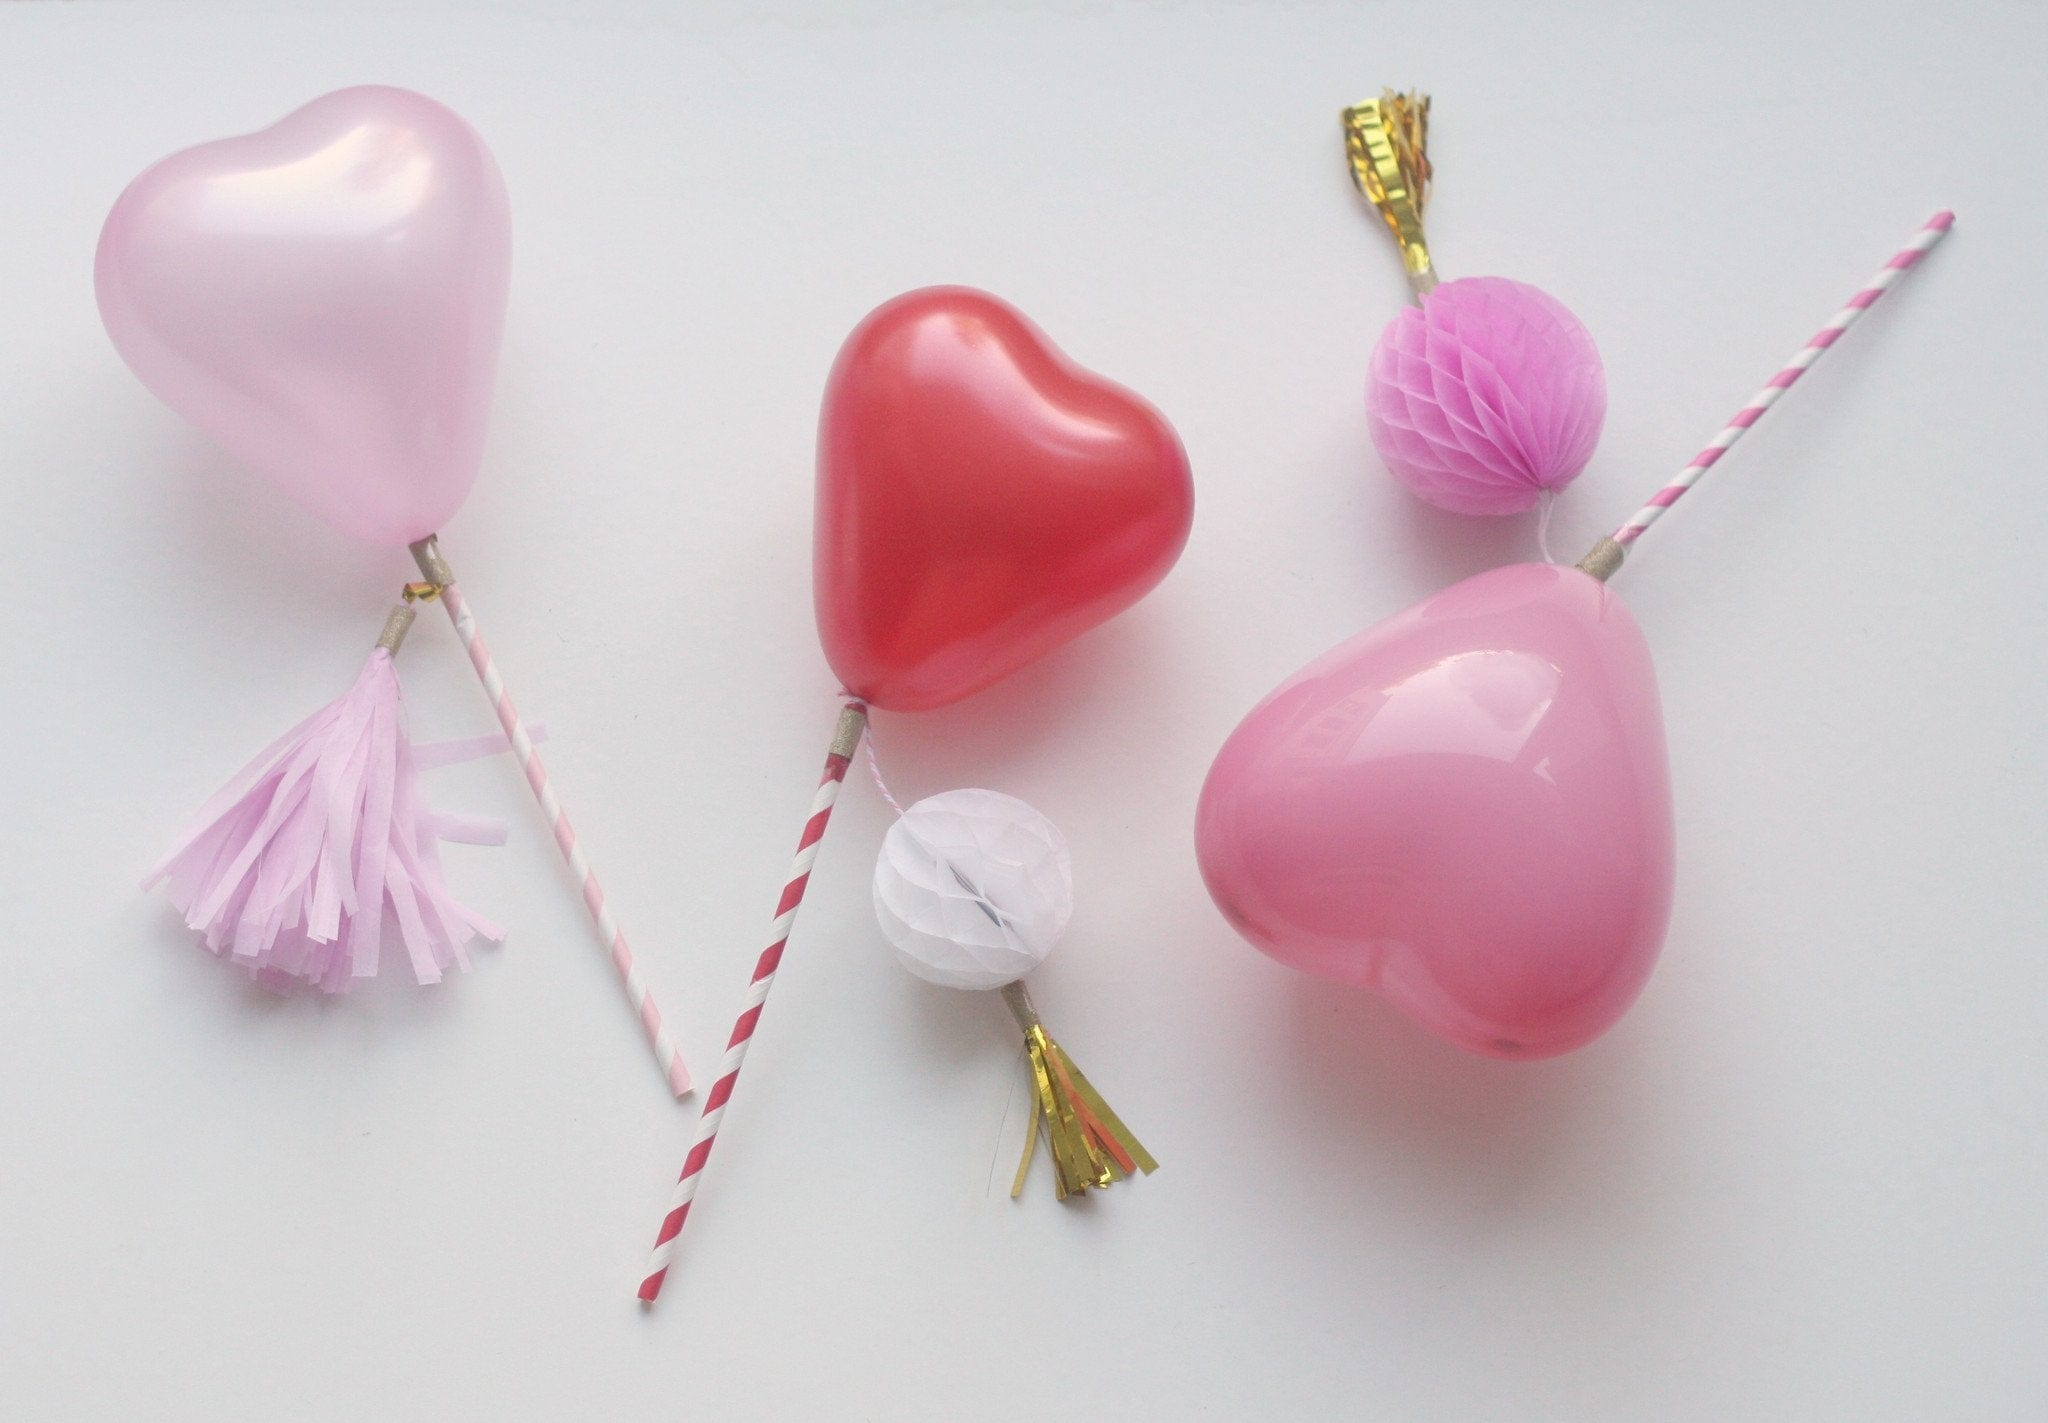 Mini Heart Balloons | Latex Heart Shaped Balloons